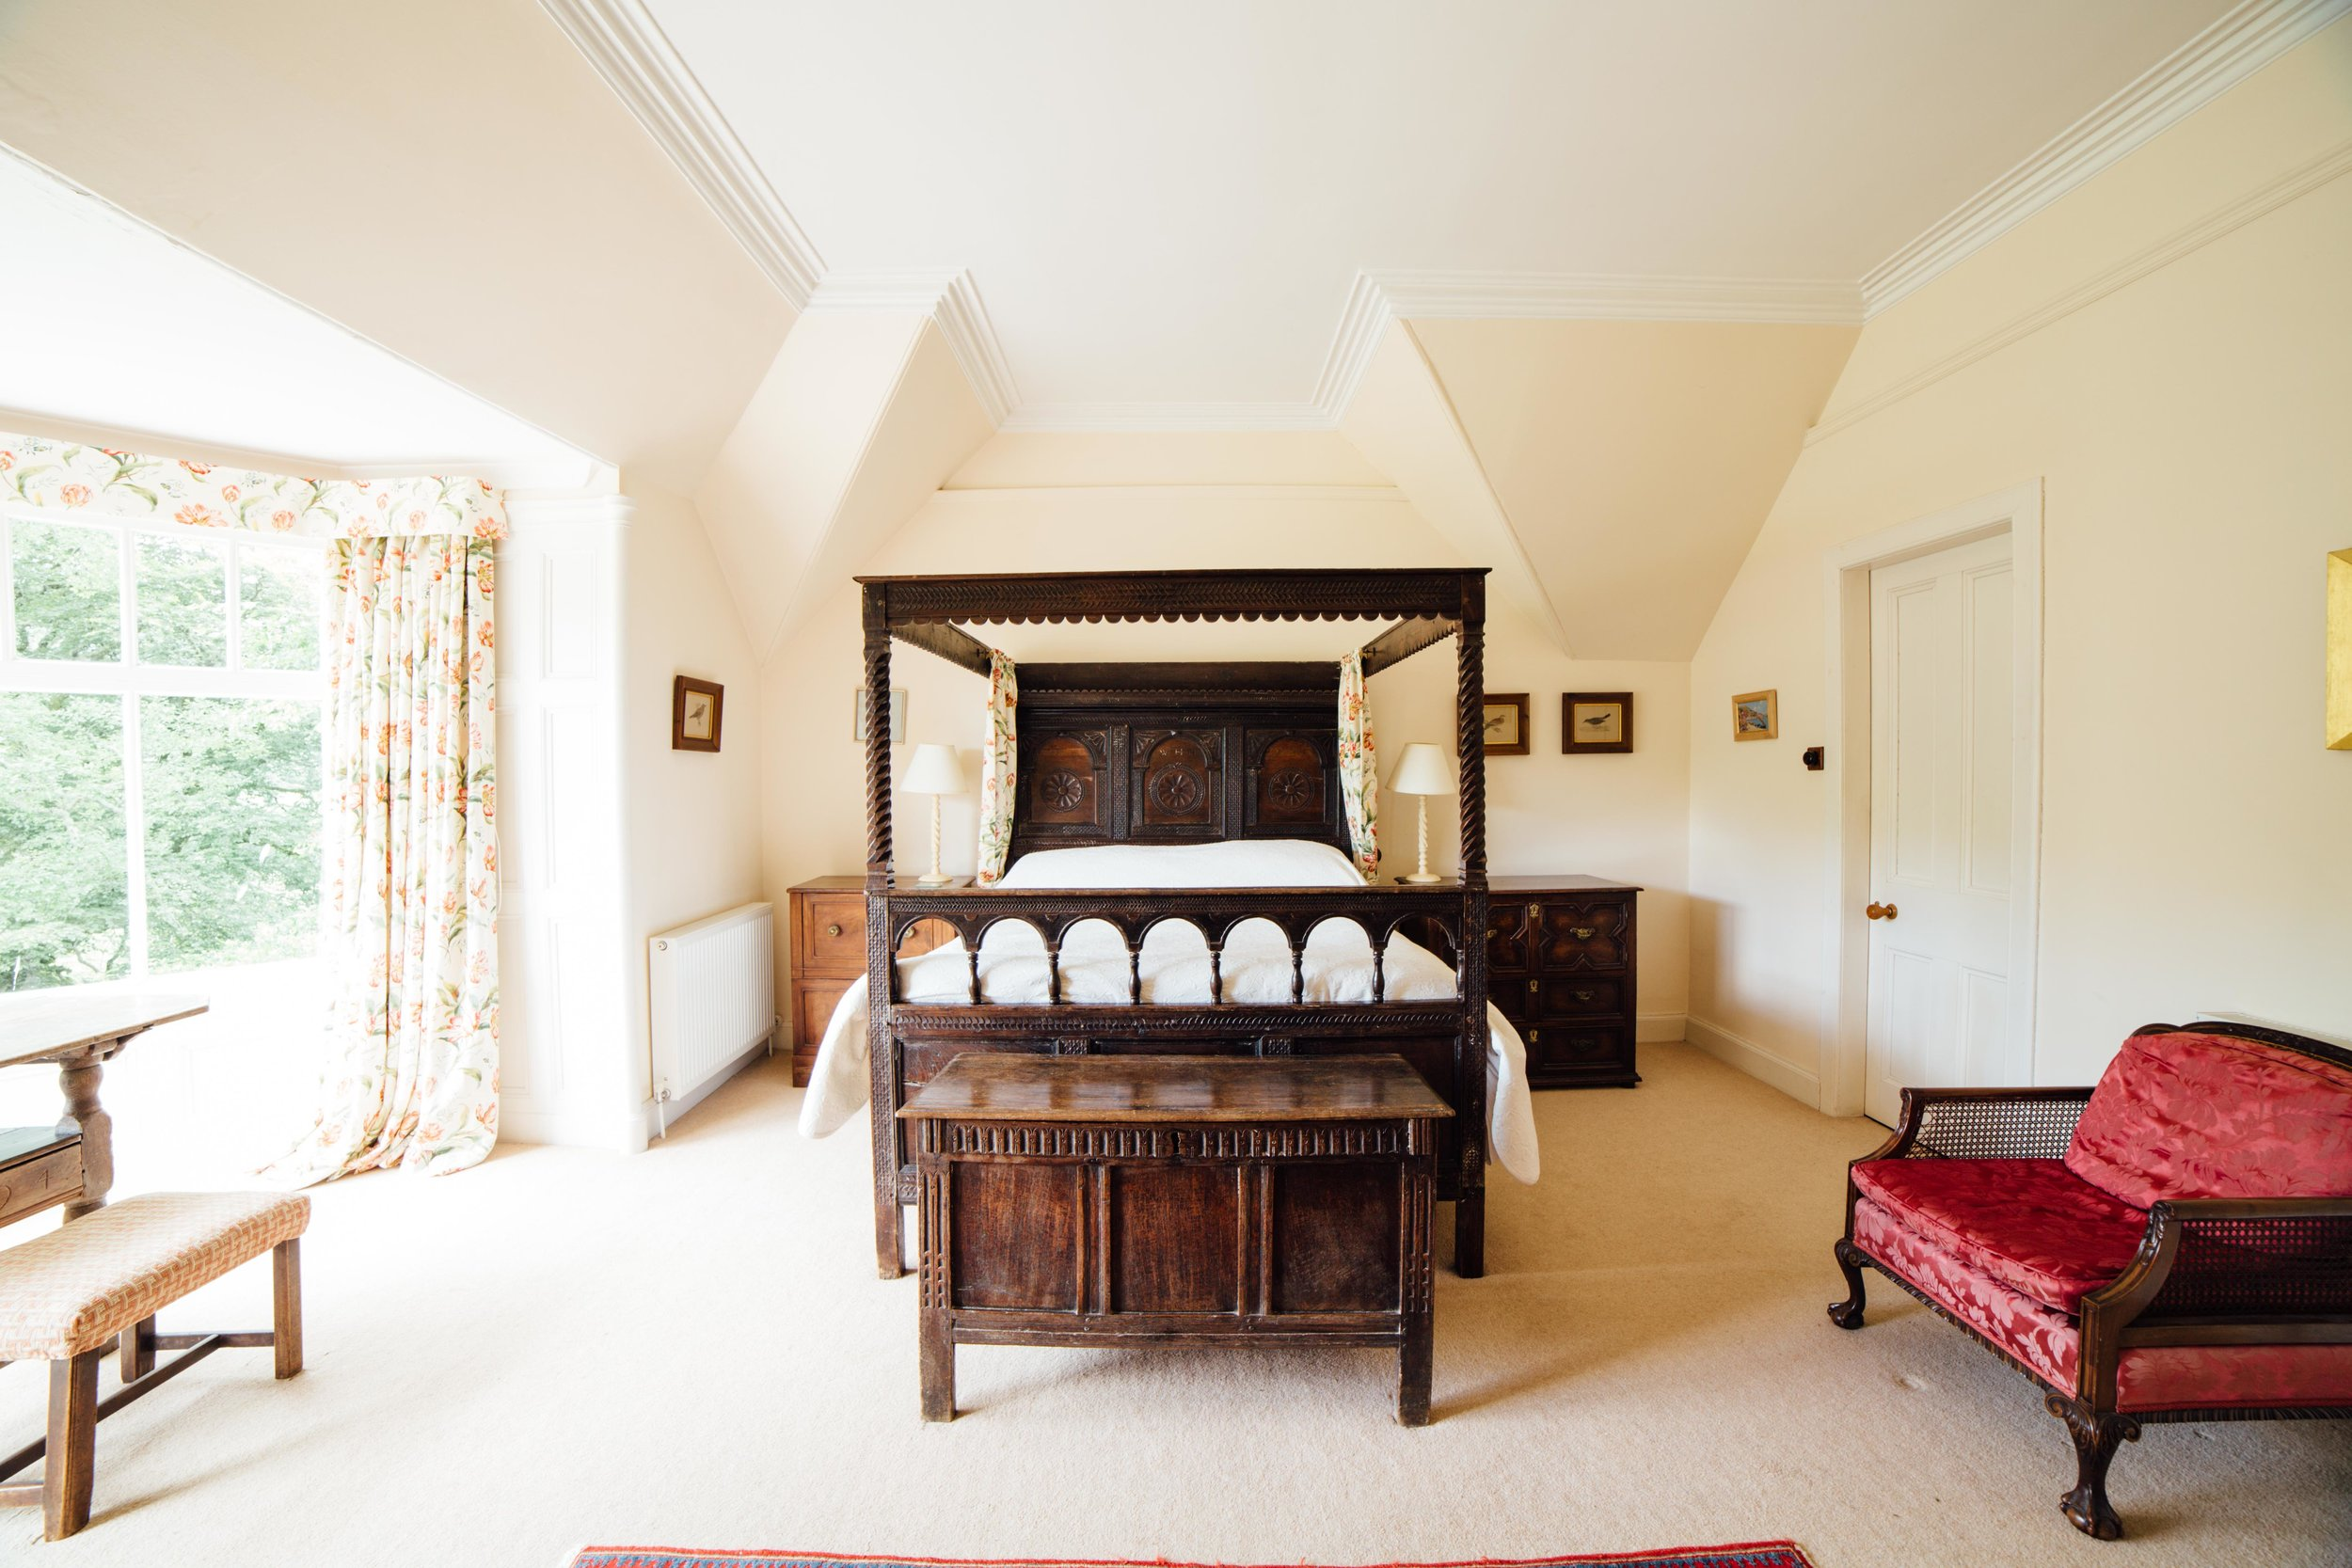 First Floor - Seven bedrooms, three with ensuite bathrooms as follows:Bedroom One with twin bedsBedroom Two with double bed and ensuite bathroomBedroom Three with twin beds and basinBedroom Four with double bed and ensuite bathroomBedroom Five with Jacobean four poster double bed and ensuite bathroomBedroom Six with twin bedsBedroom Seven with twin bedsTwo further bathrooms